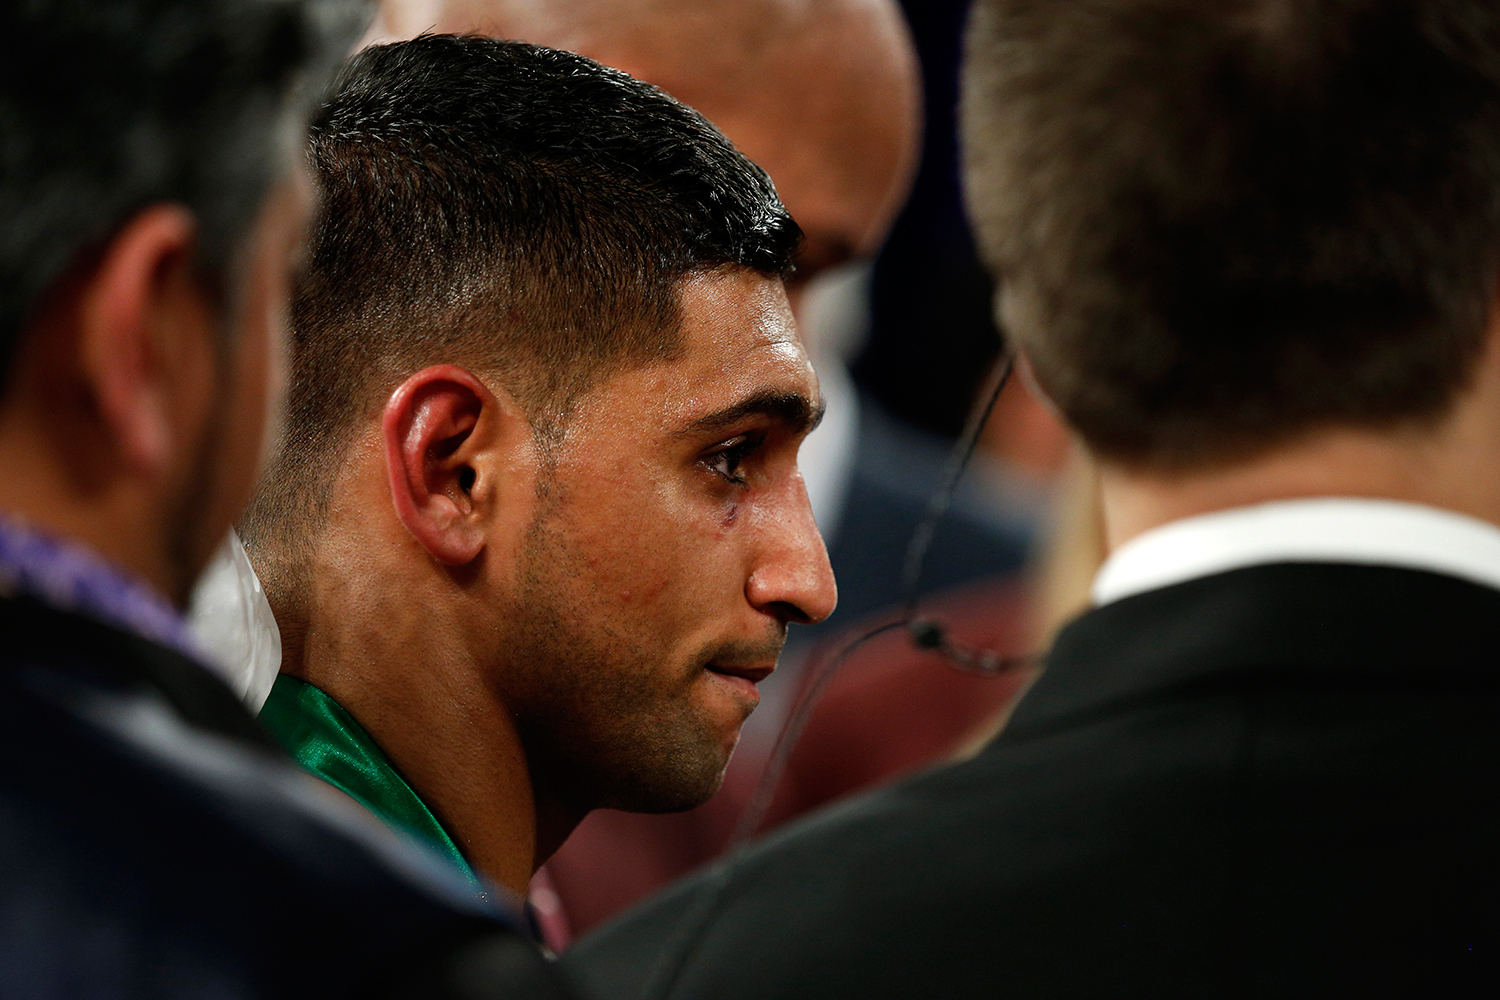 Amir Khan after losing the fight. — Reuters